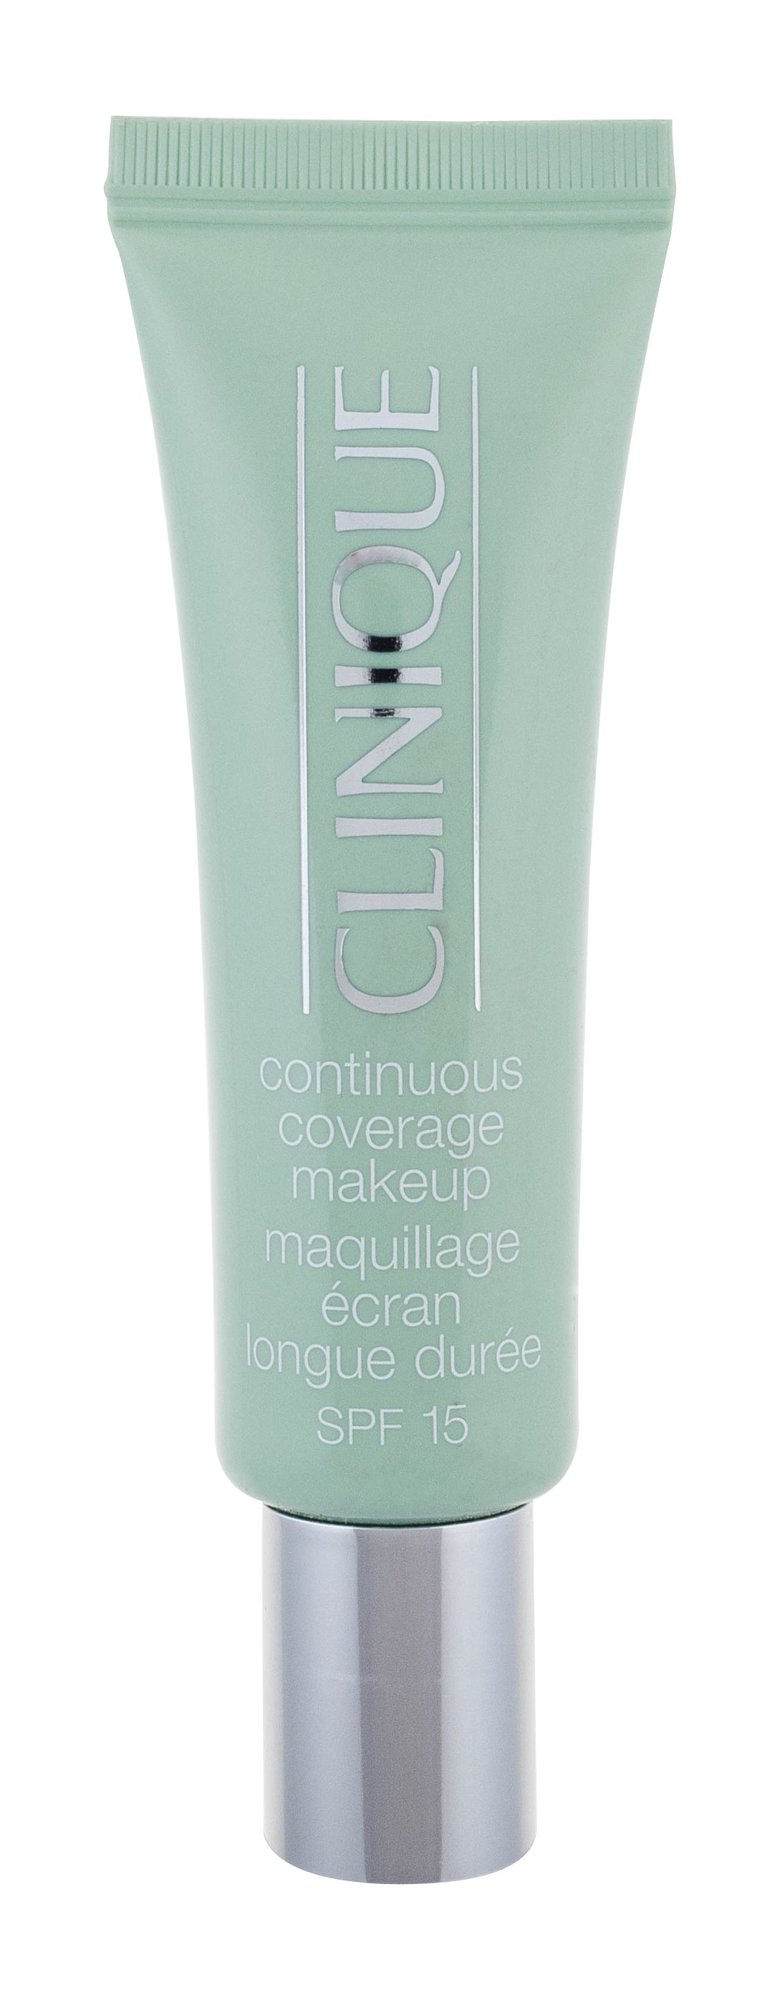 Clinique Continuous Coverage Cosmetic 30ml 07 Ivory Glow SPF15